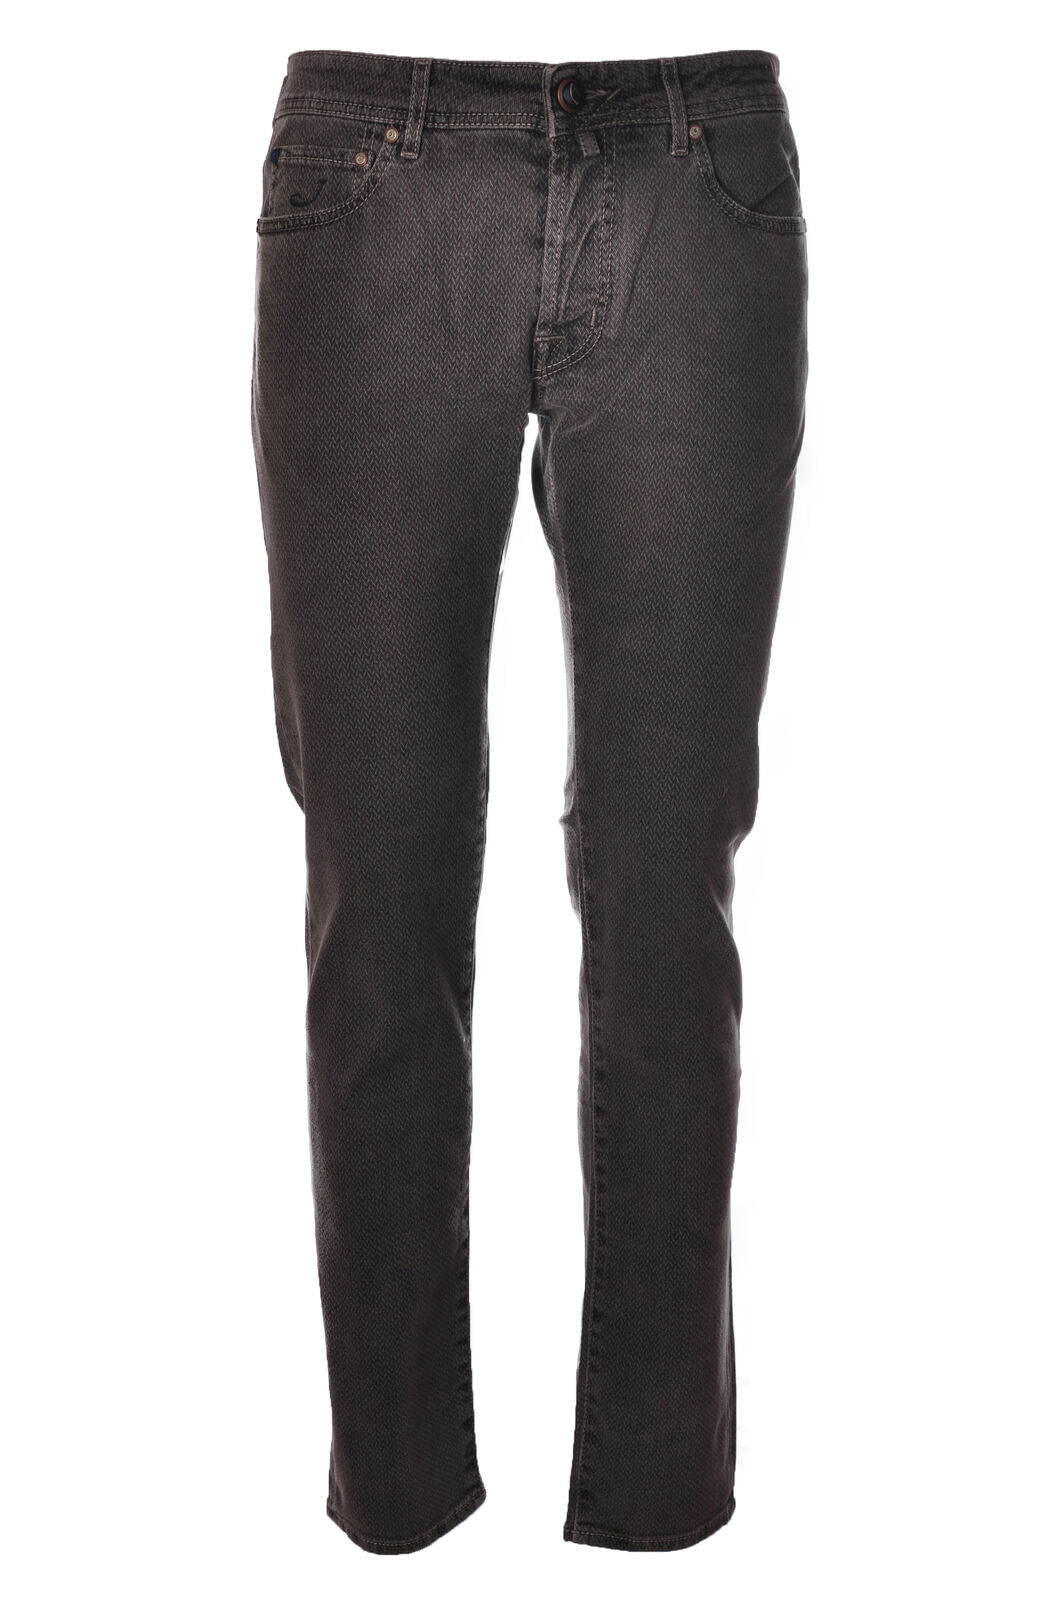 Jacob Cohen - Jeans-straight leg Pants - Man - Fantasy - 2554531A191648